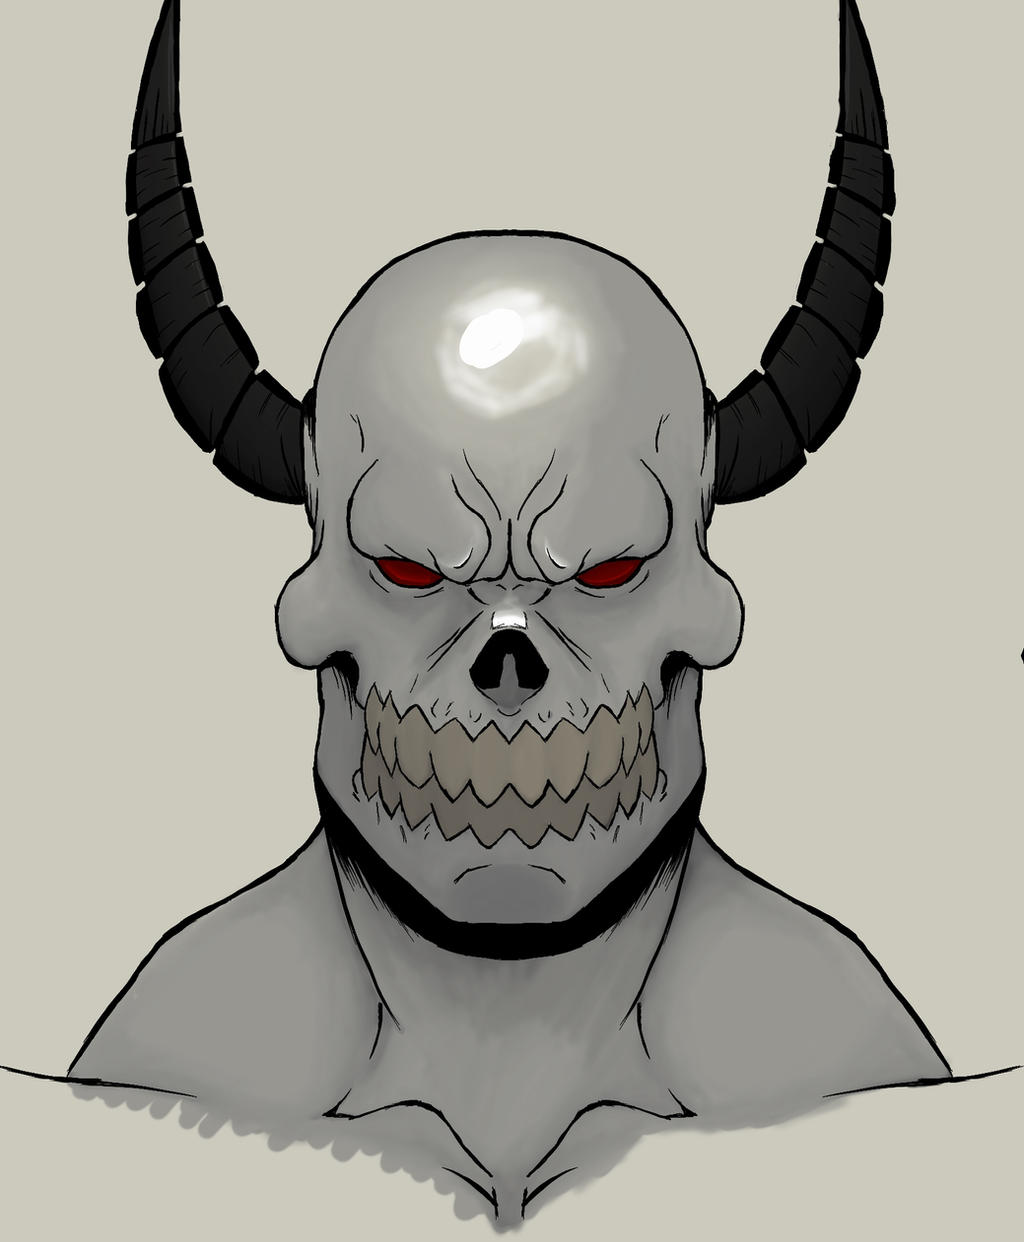 Devil skull wallpaper 2 by devilskull555 on deviantart - Devil skull wallpaper ...